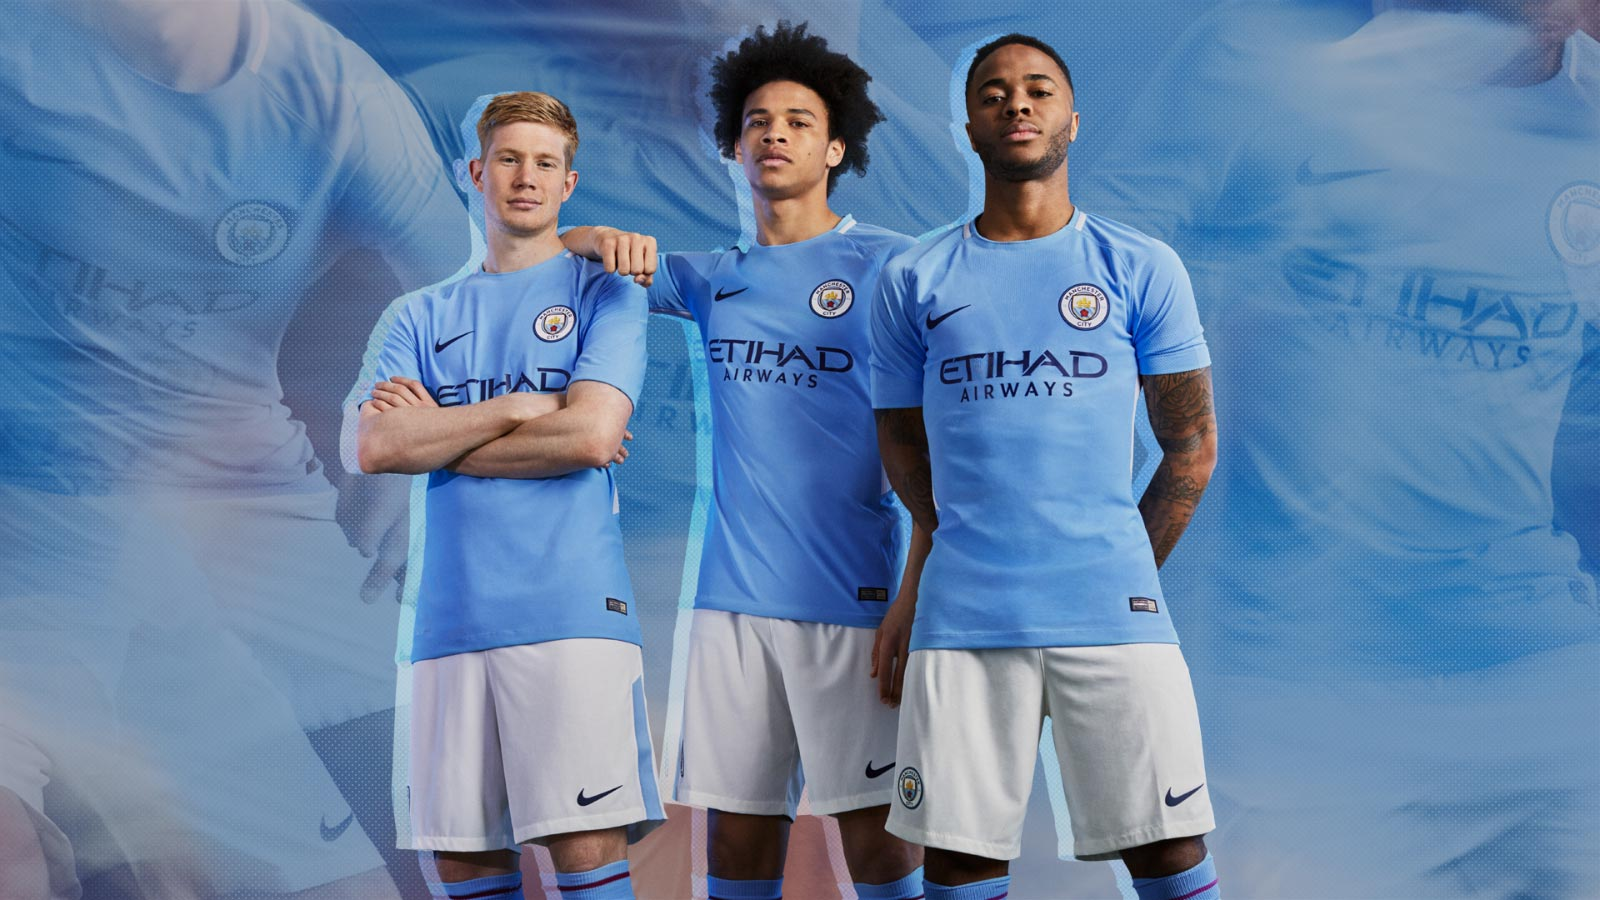 Manchester City 17-18 Home Kit Released